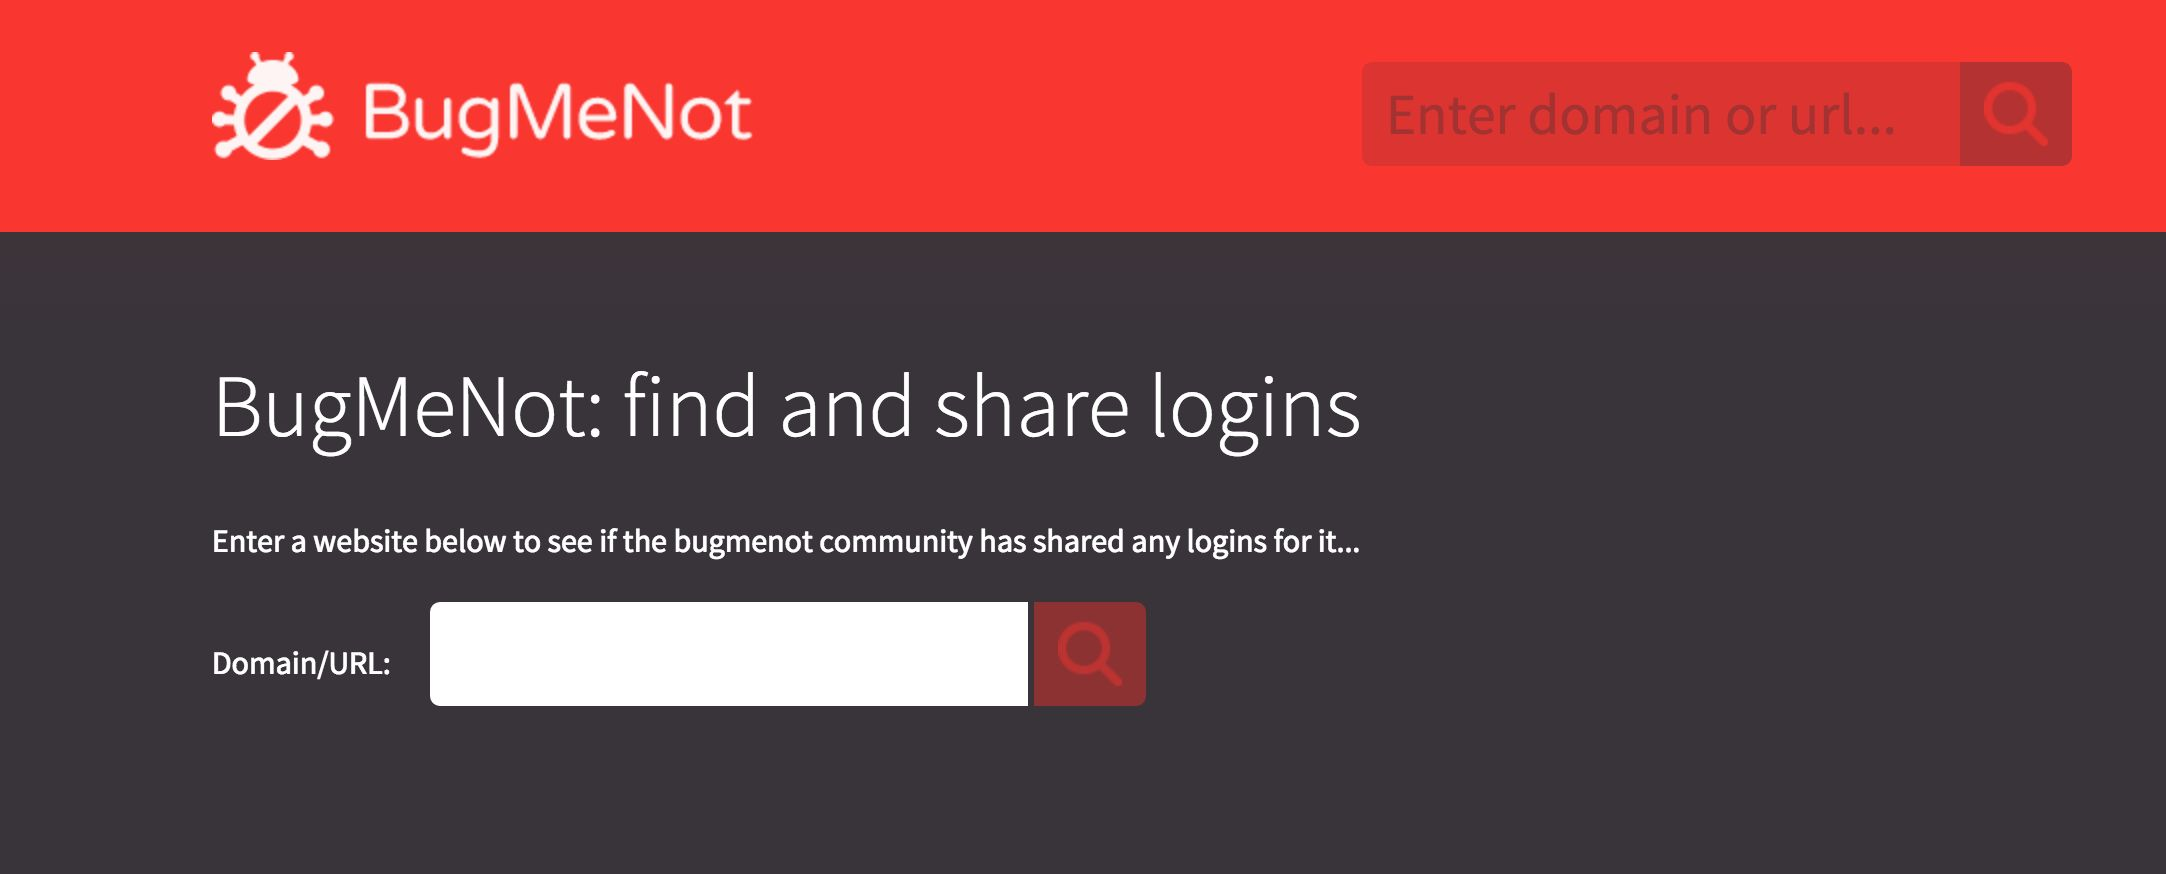 Bugmenot- Find Shared Logins of any website